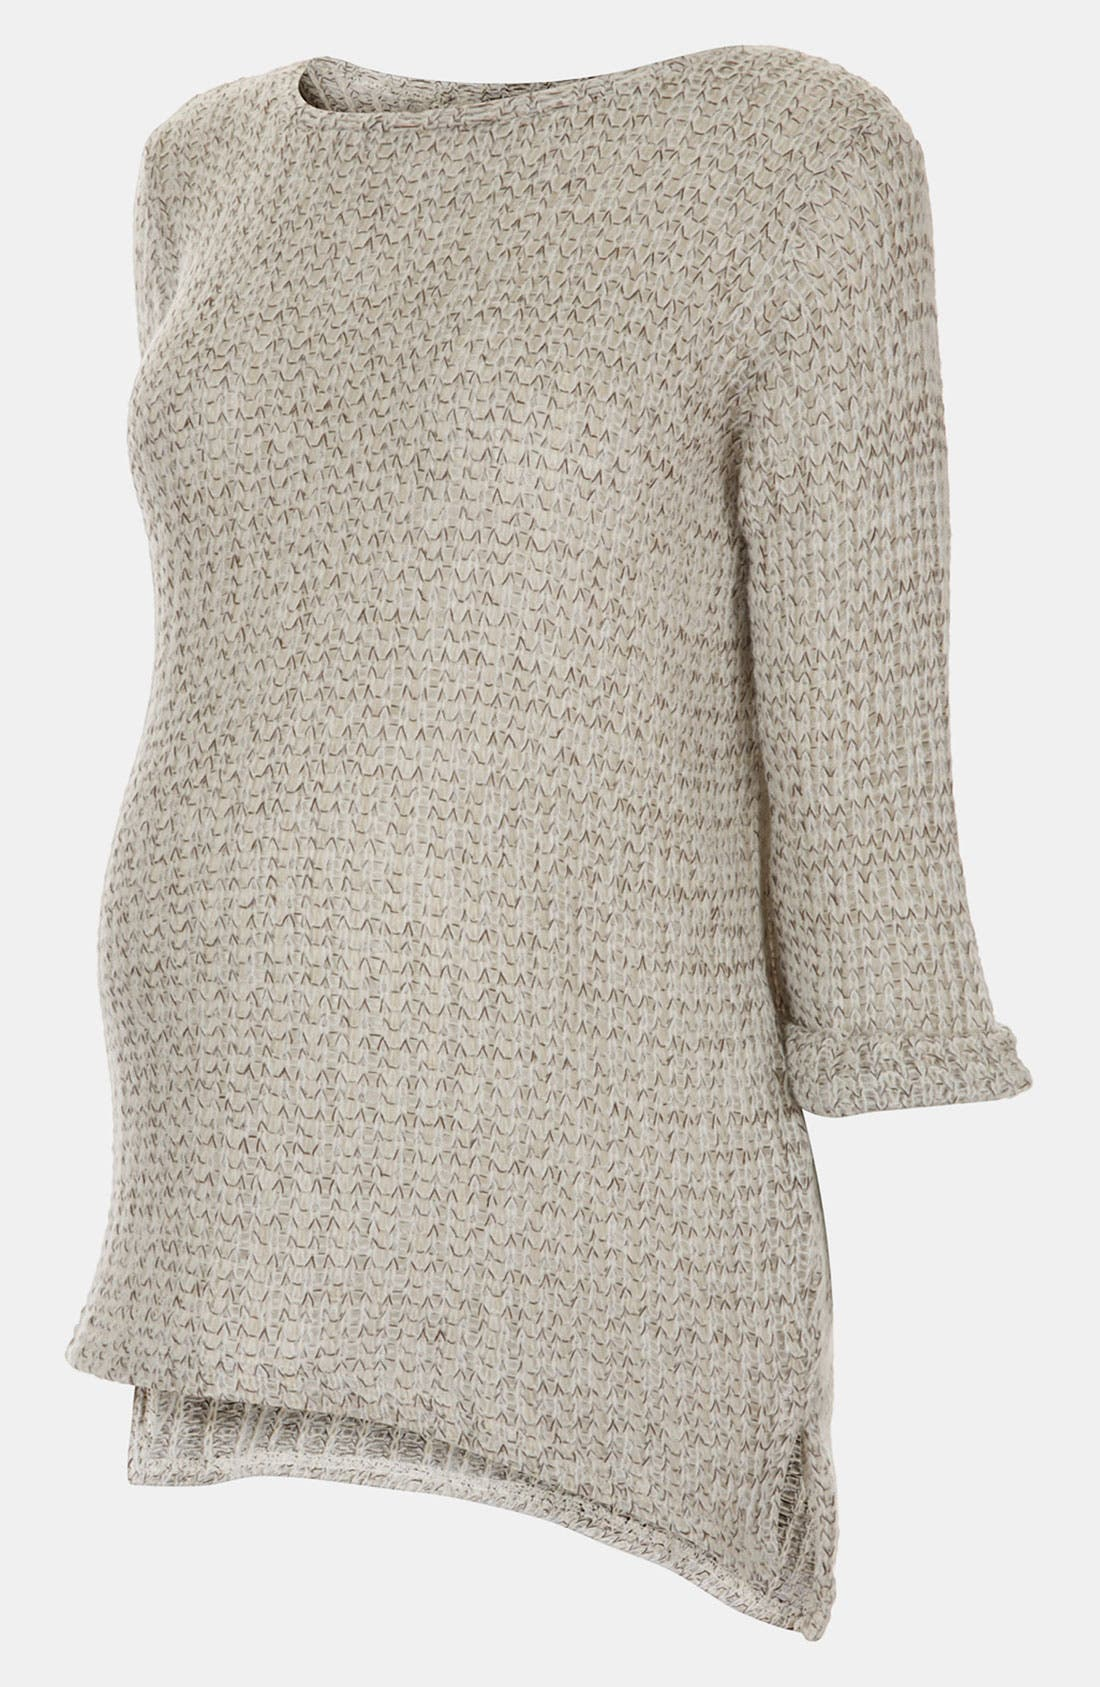 Alternate Image 1 Selected - Topshop Maternity Fisherman Sweater